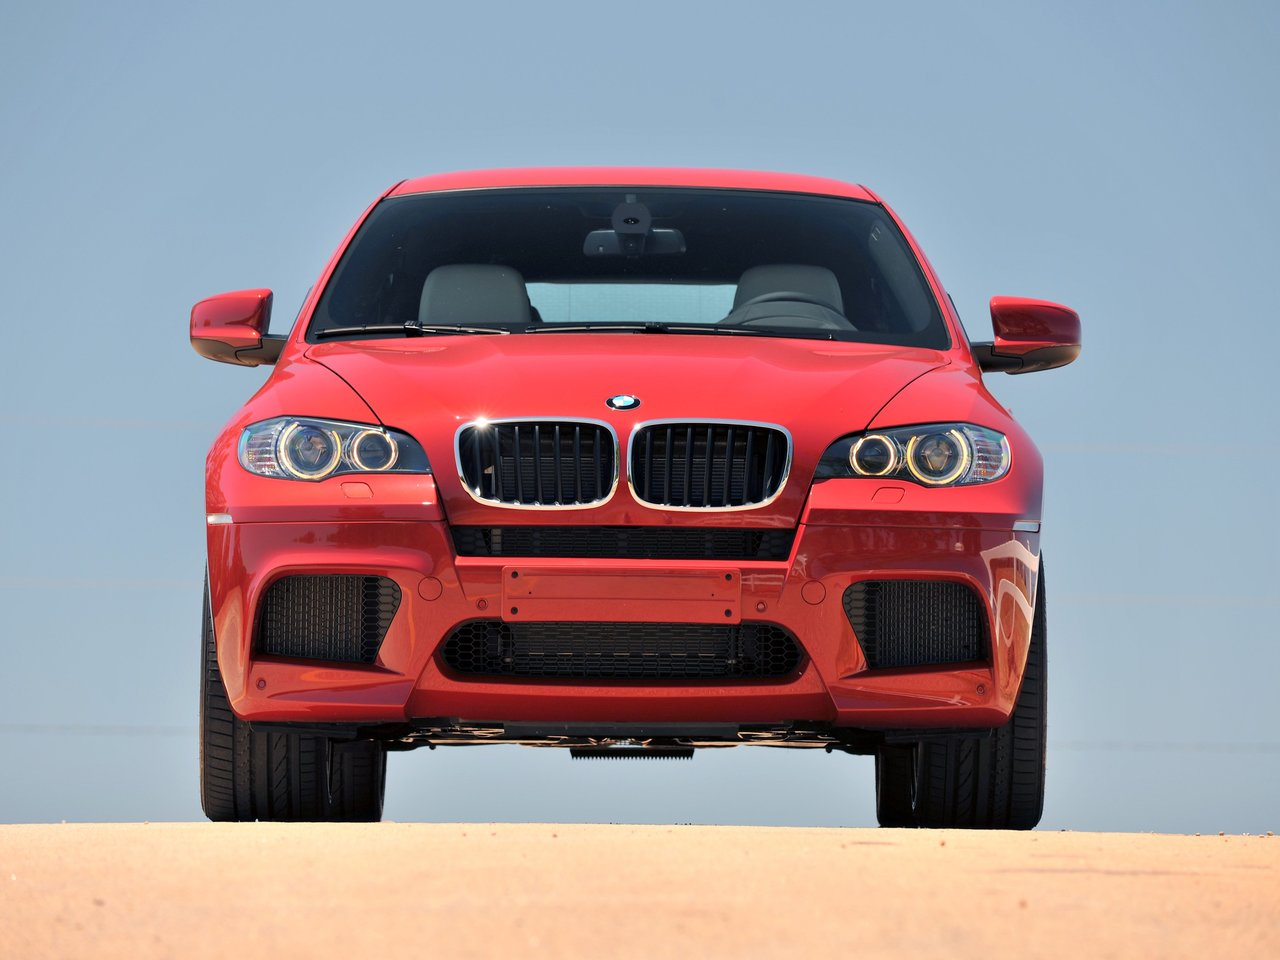 bmw x6 m e71 bmw x6 addition bmw x4 m also bmw 750li on. Black Bedroom Furniture Sets. Home Design Ideas